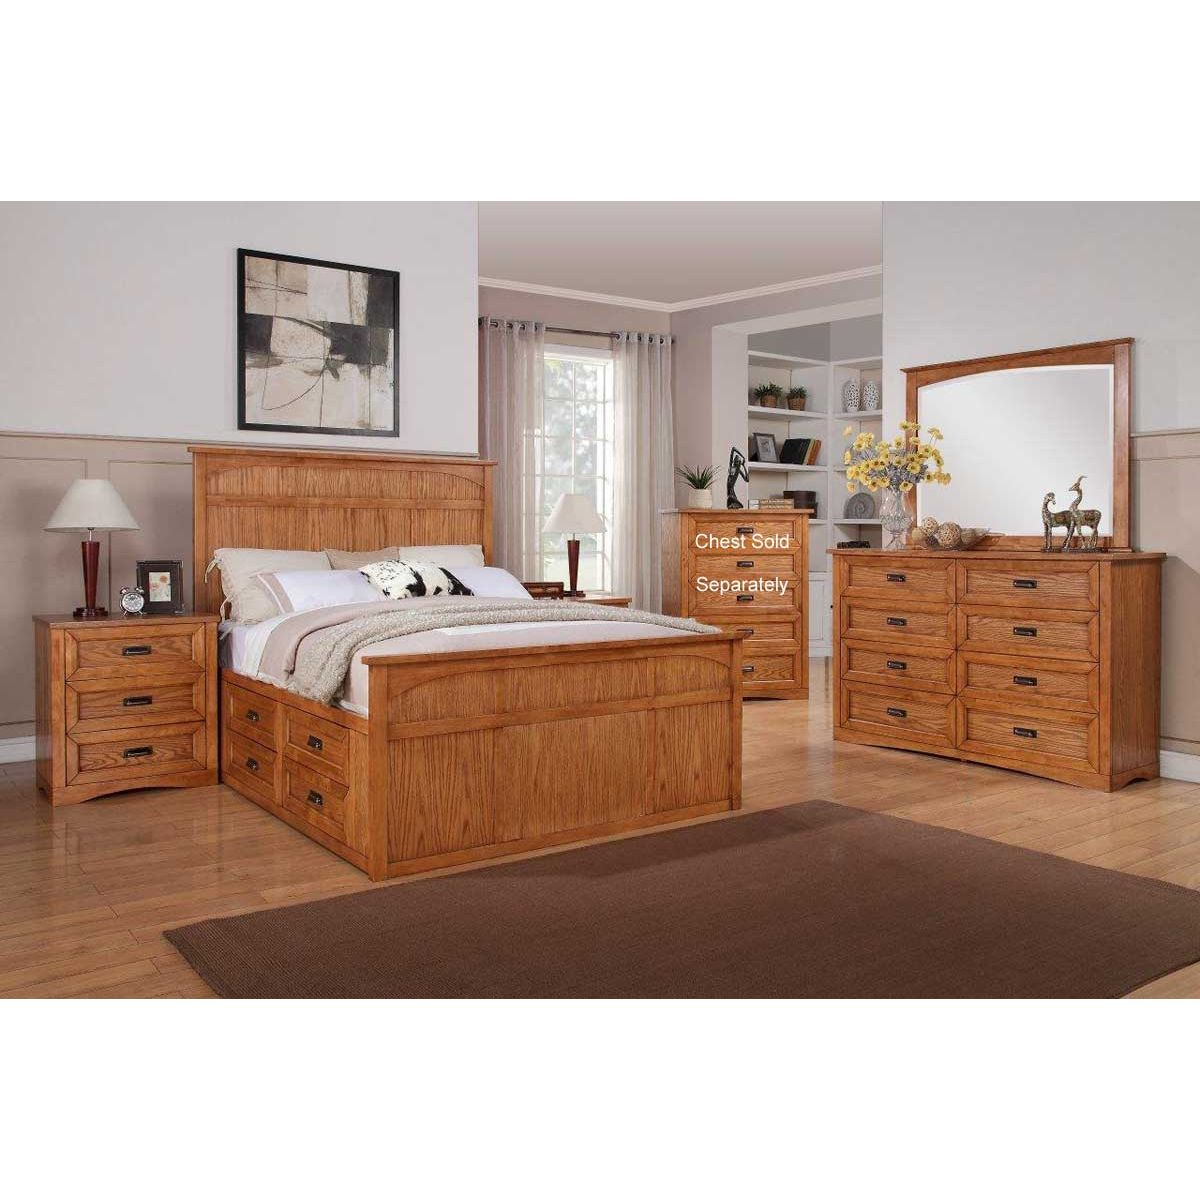 7 Piece King Bedroom Furniture Sets Photo   2